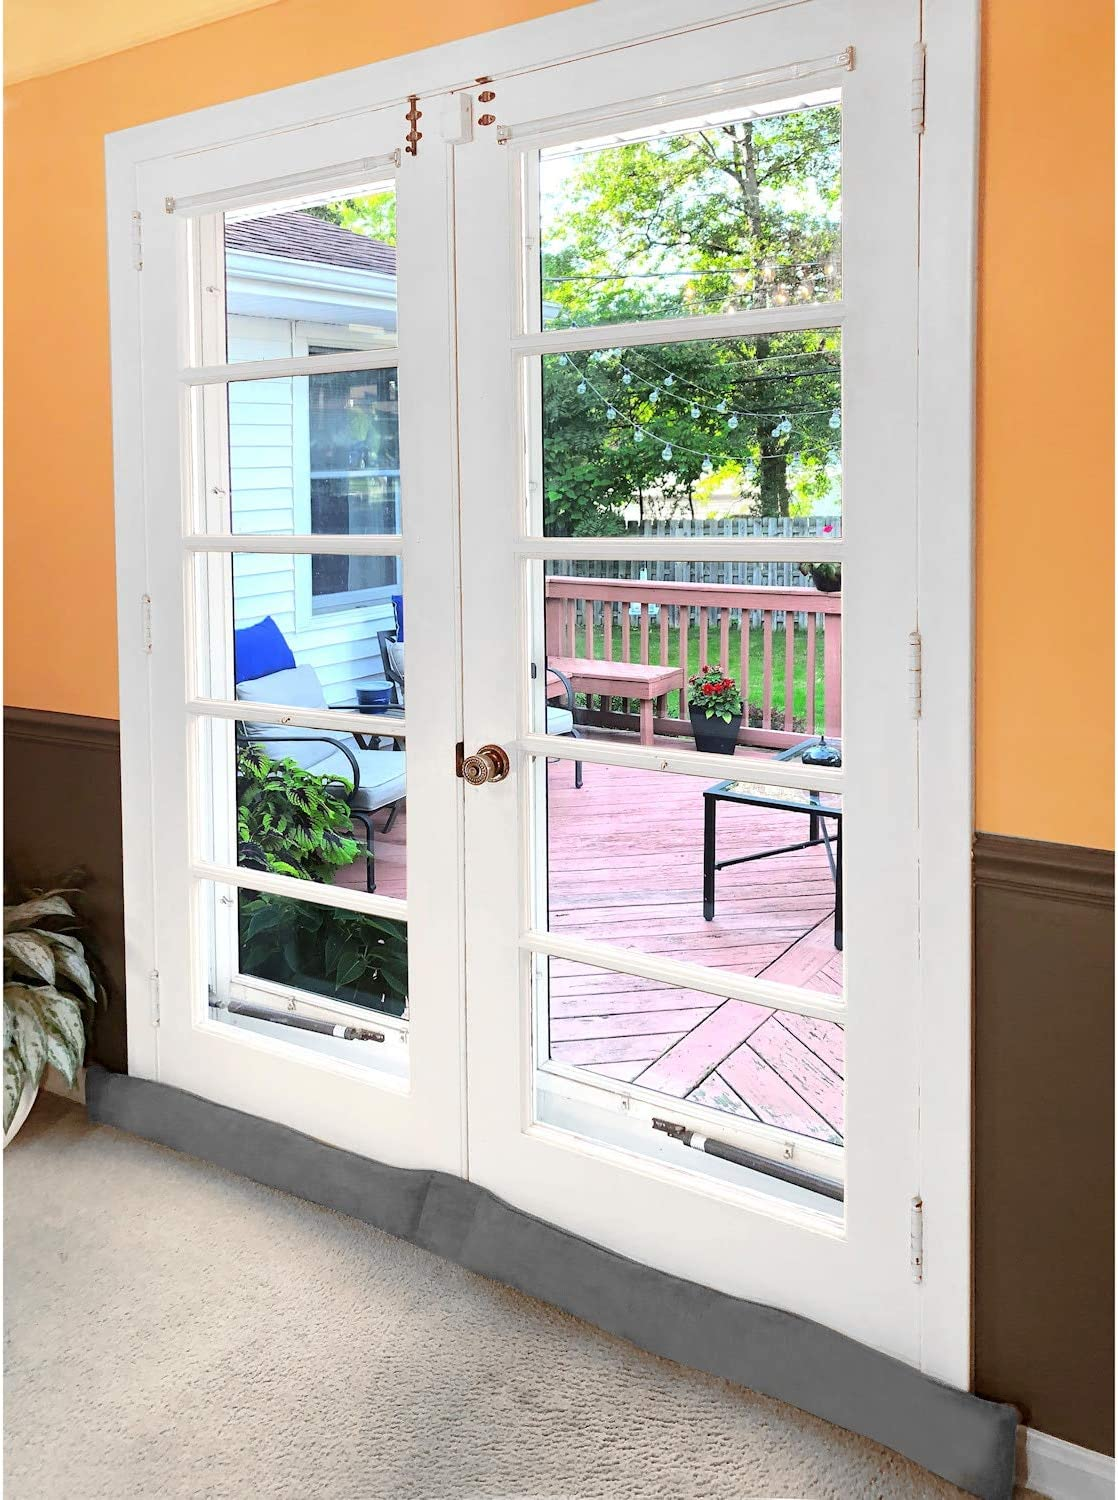 Bug Stopper Gray Noise Blocker Weighted Door and Window Breeze Guard HOME DISTRICT French Door Draft Dodger 60 Inches Long